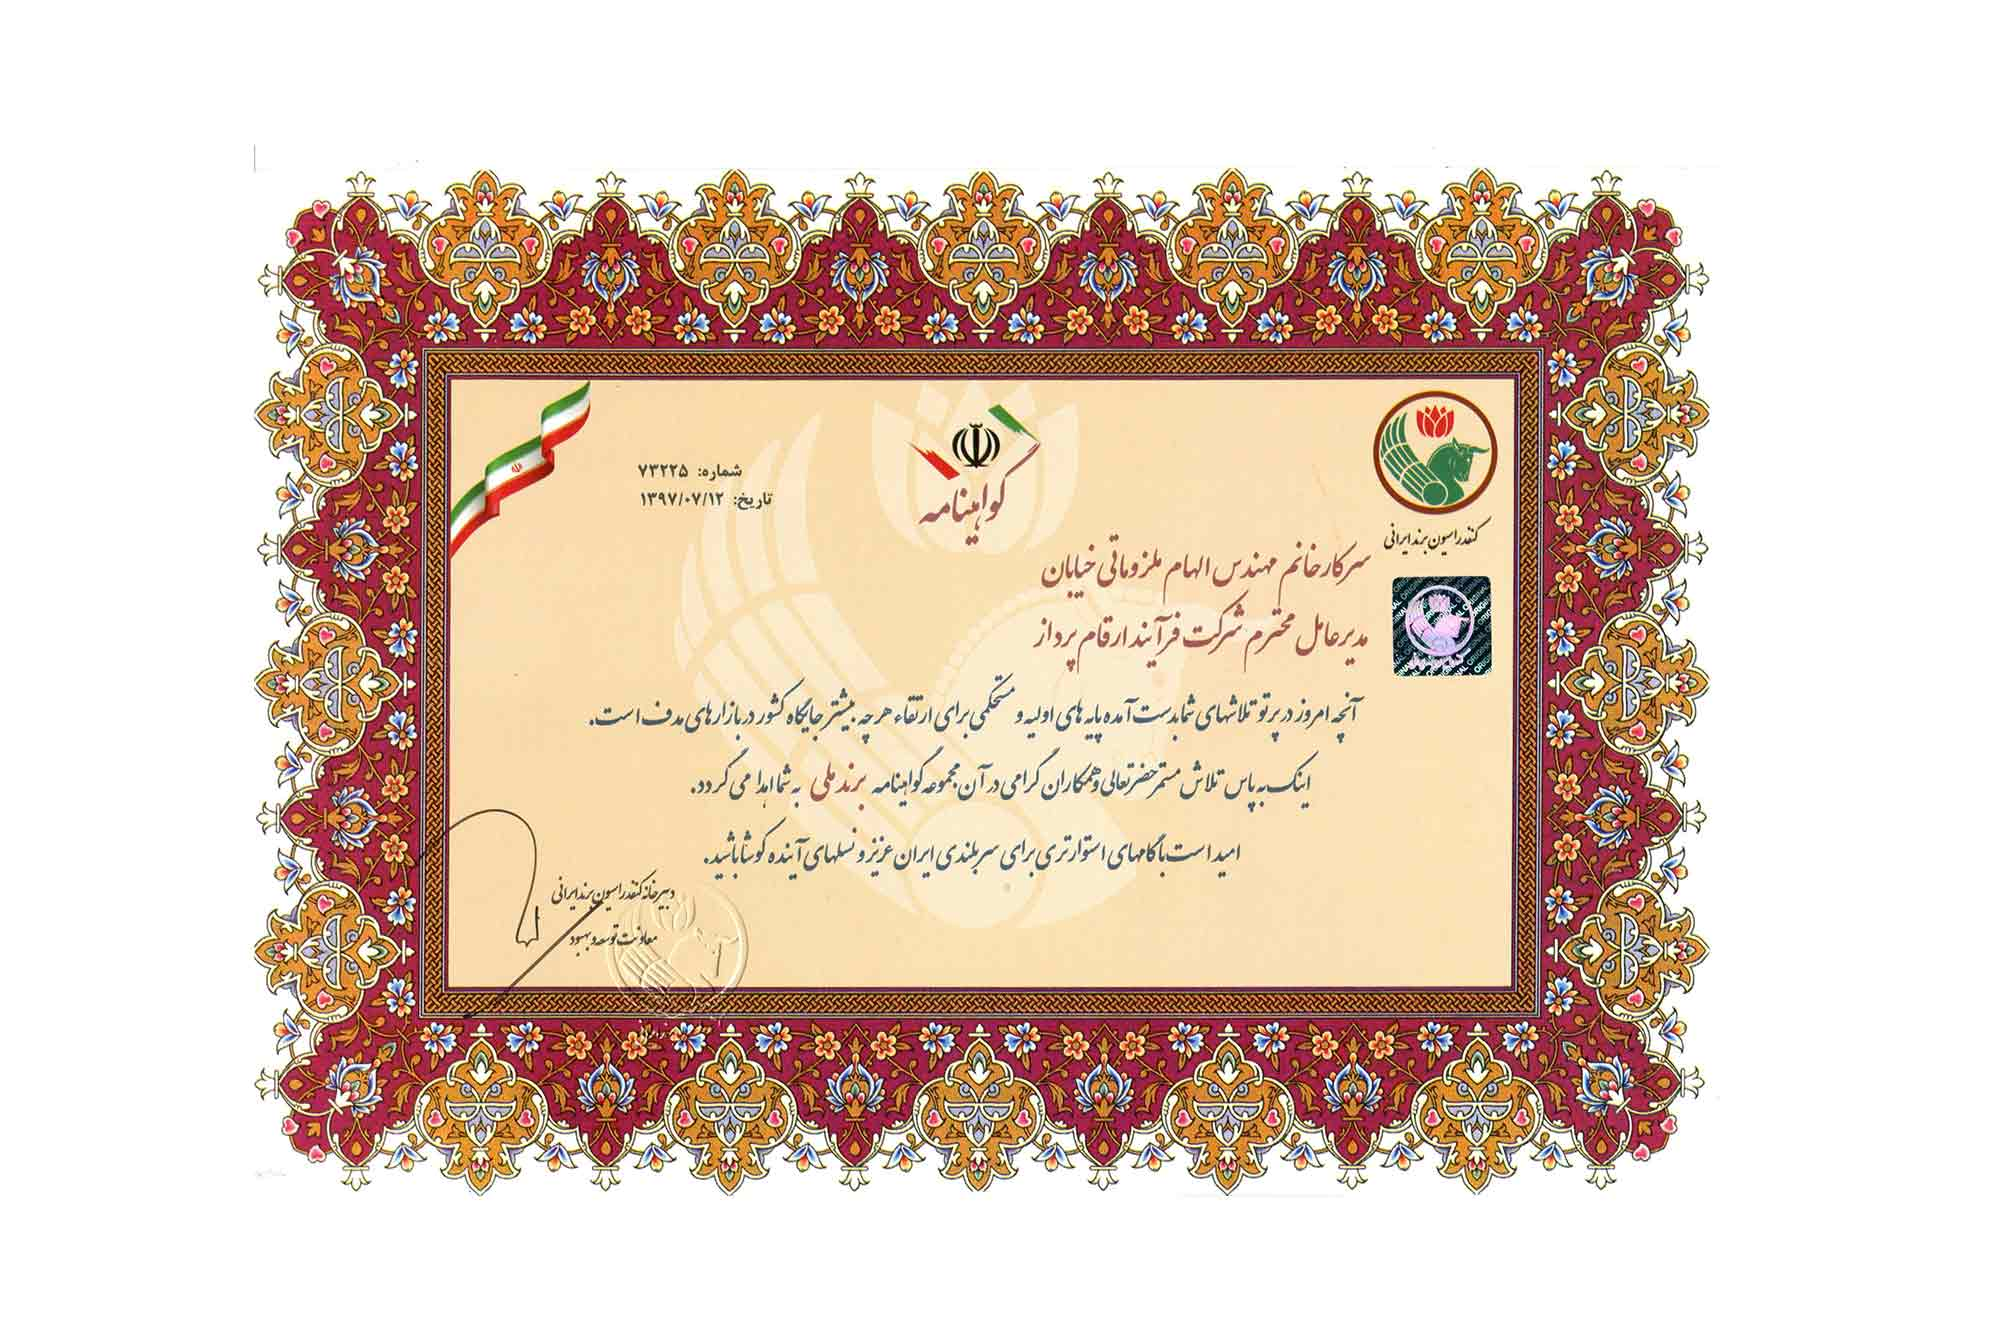 National brand certificate from the Iranian brand confederation